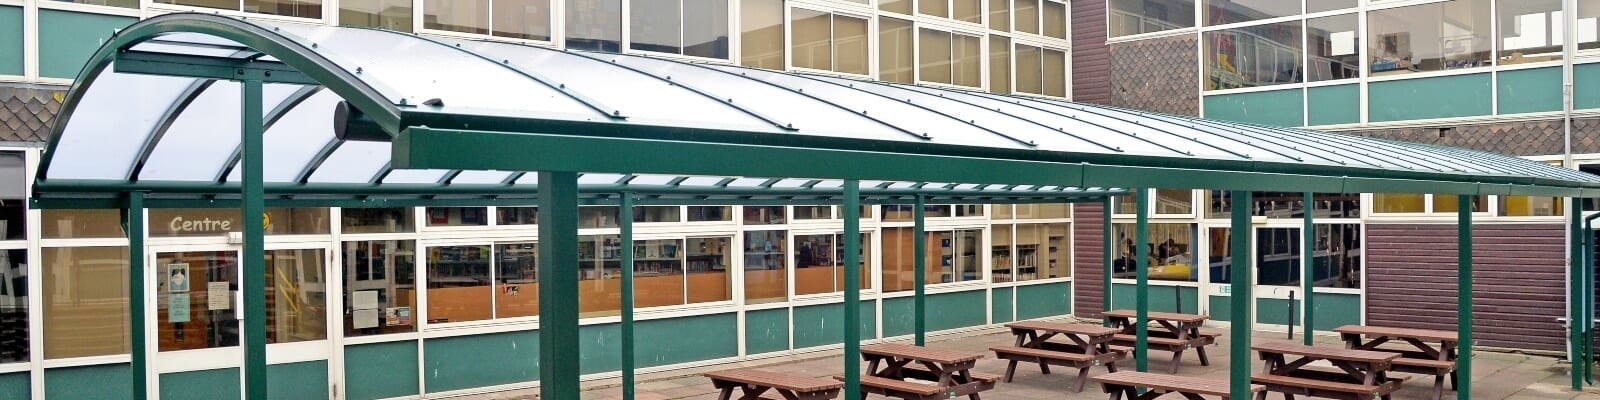 Curved roof canopy we made for Rushcliffe School